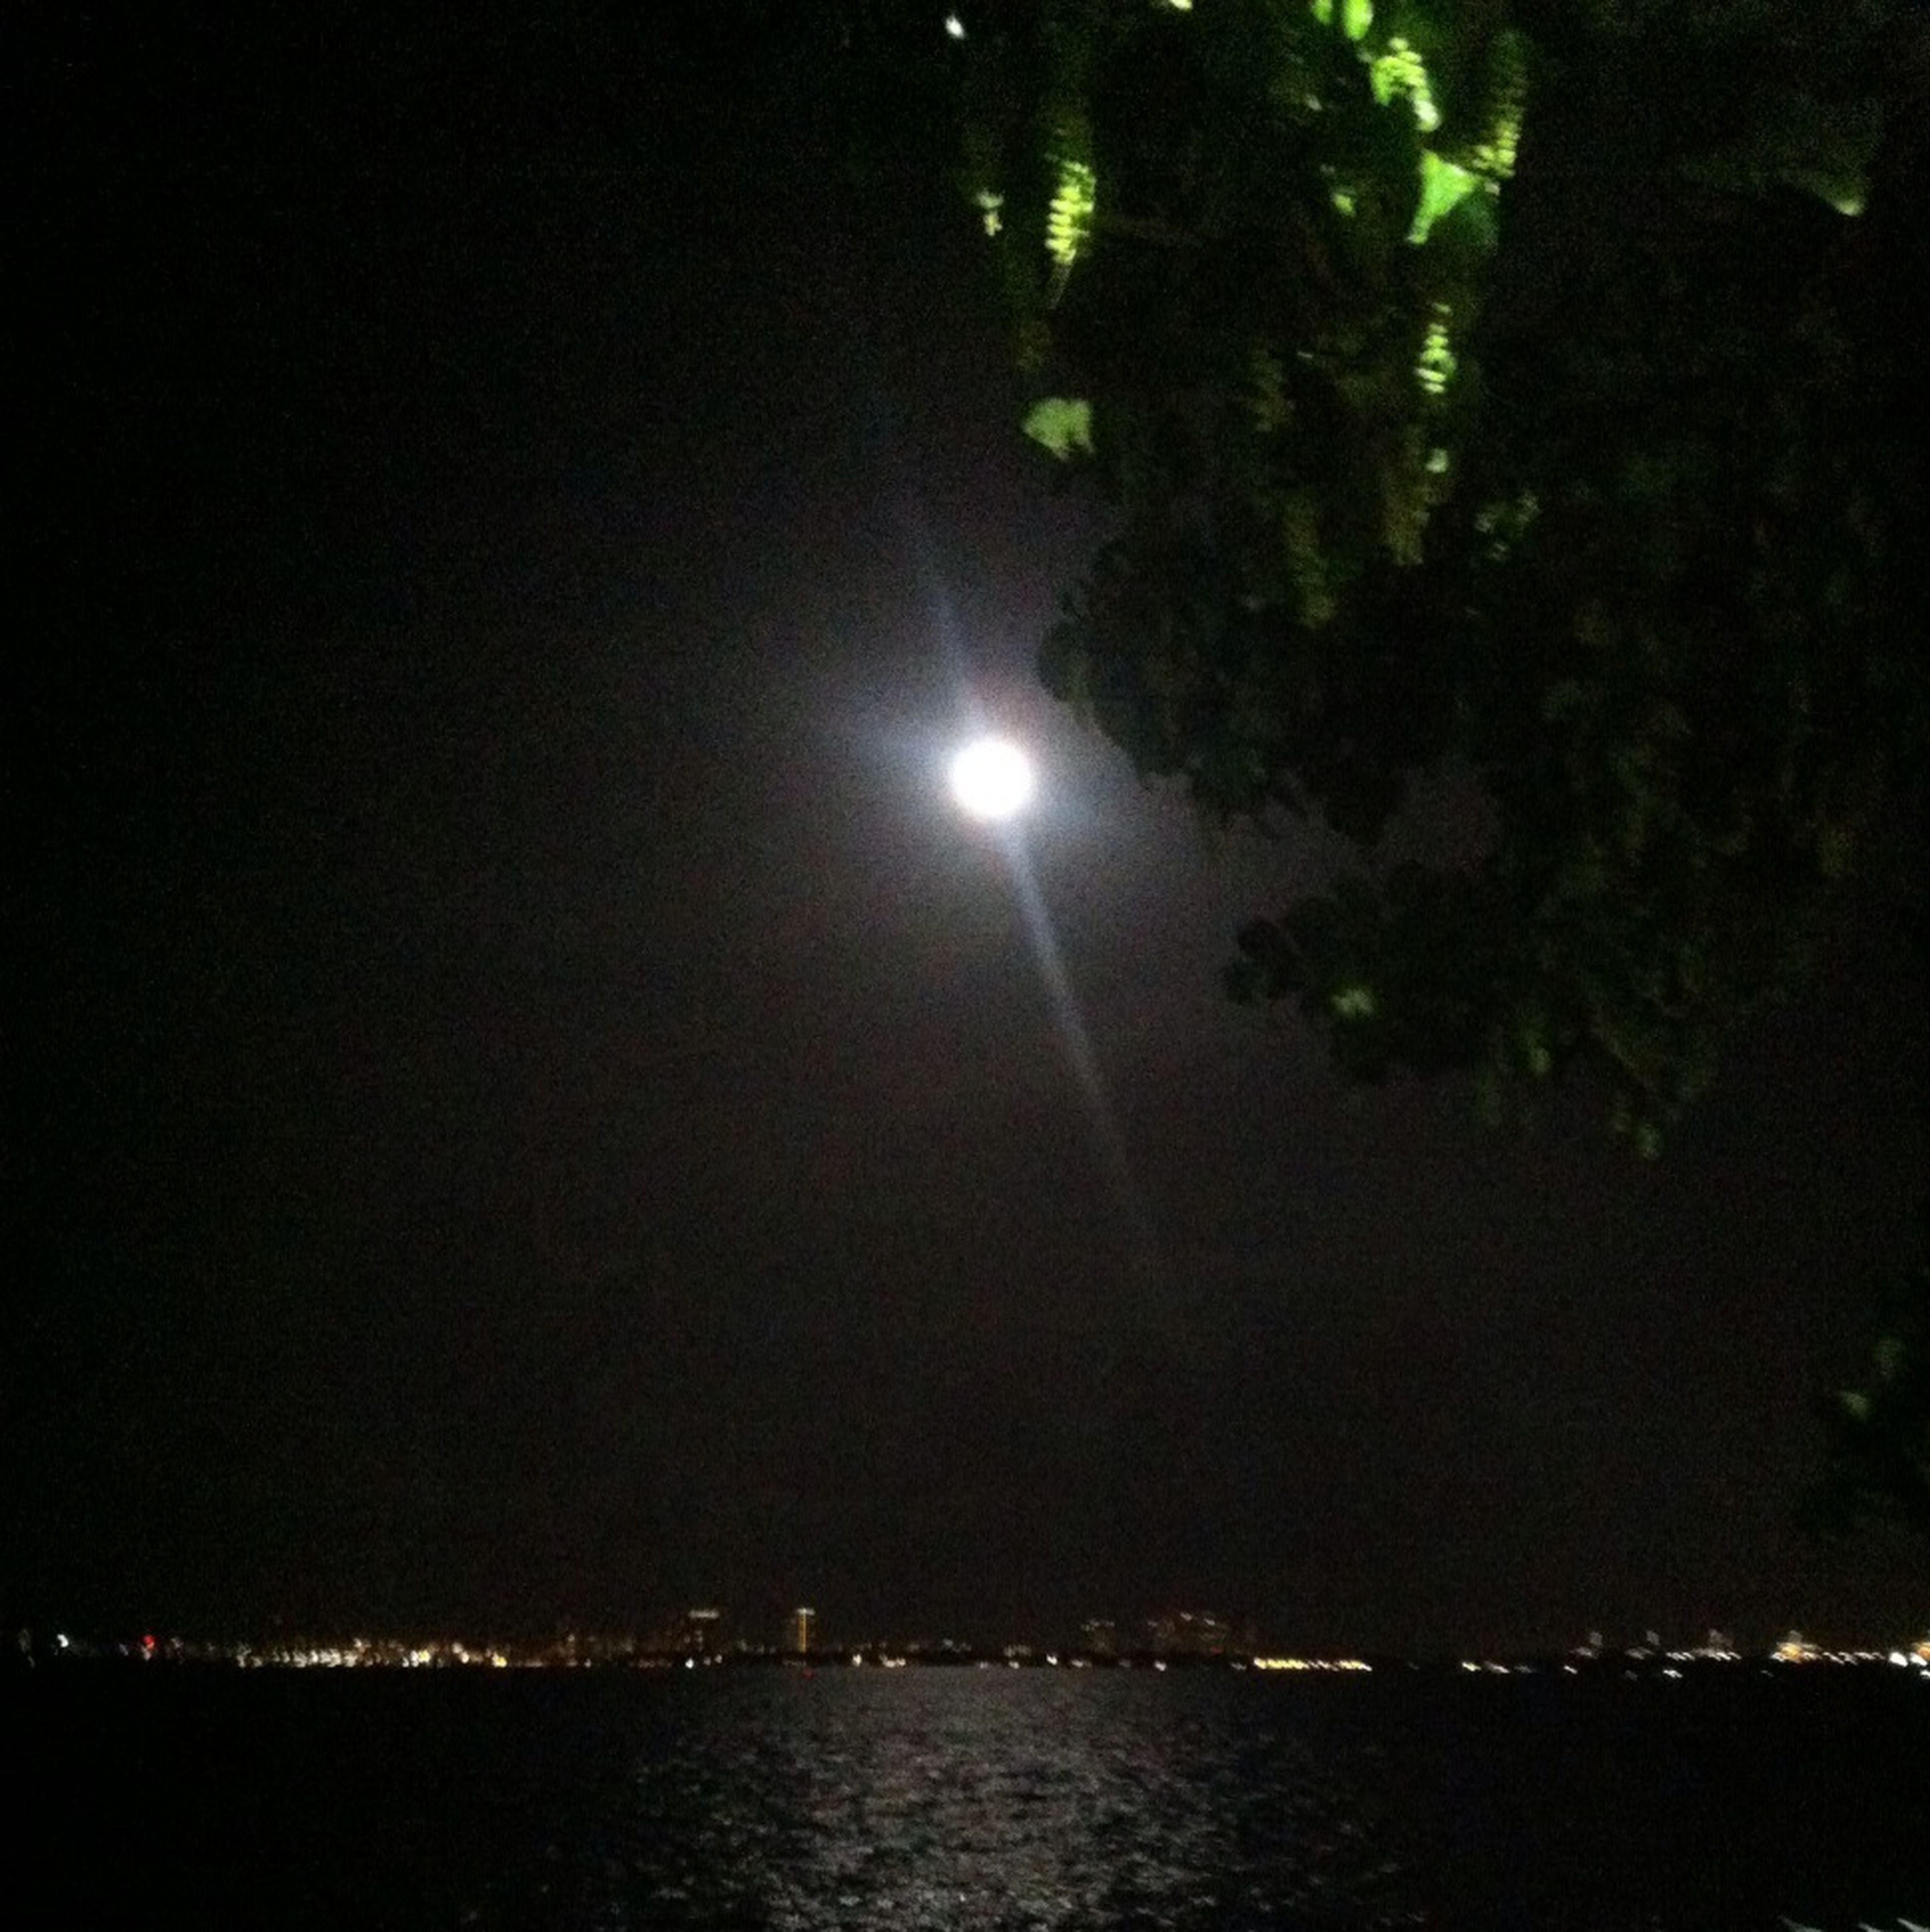 night, illuminated, water, waterfront, moon, sky, reflection, tranquility, tree, beauty in nature, scenics, nature, river, tranquil scene, dark, outdoors, glowing, light - natural phenomenon, street light, no people